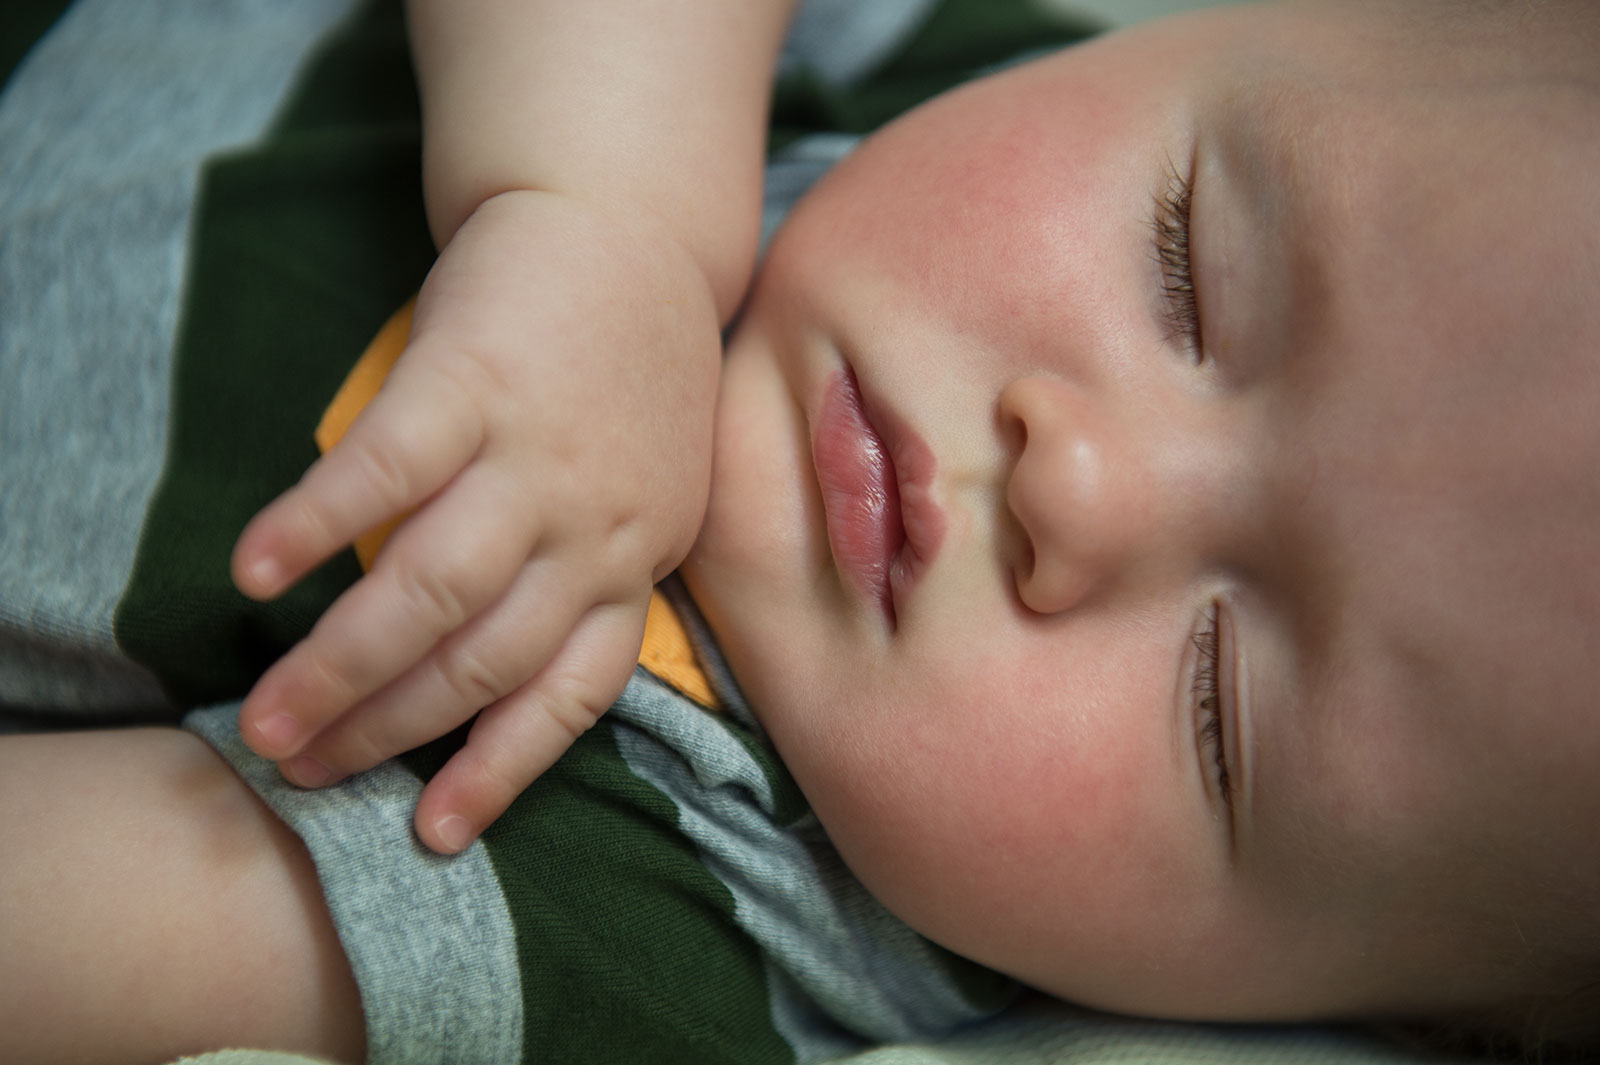 What's going on when babies twitch in their sleep? | Iowa Now